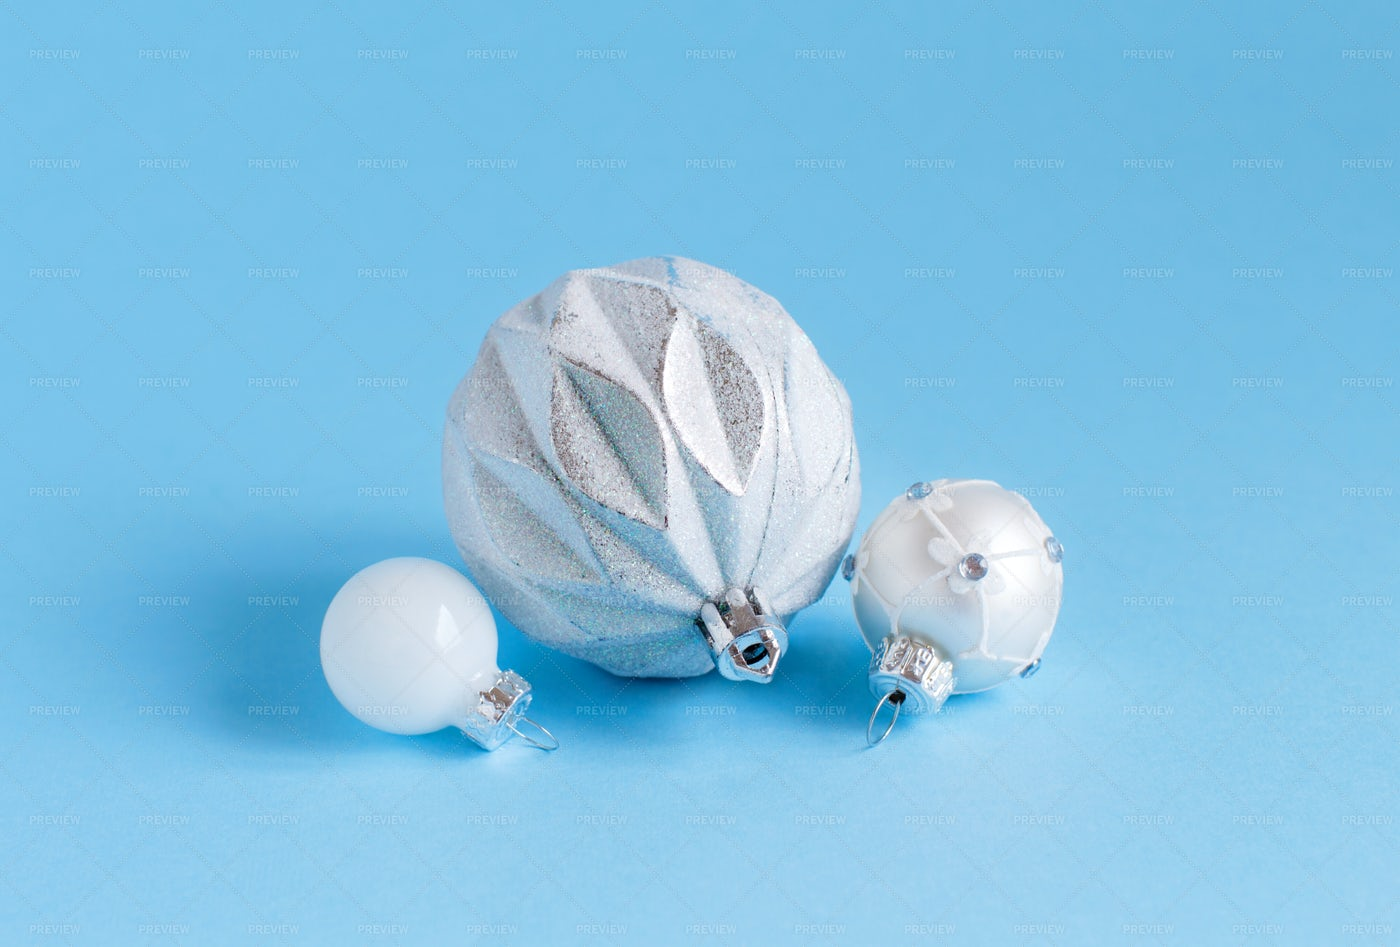 Silver And White Christmas Baubles: Stock Photos